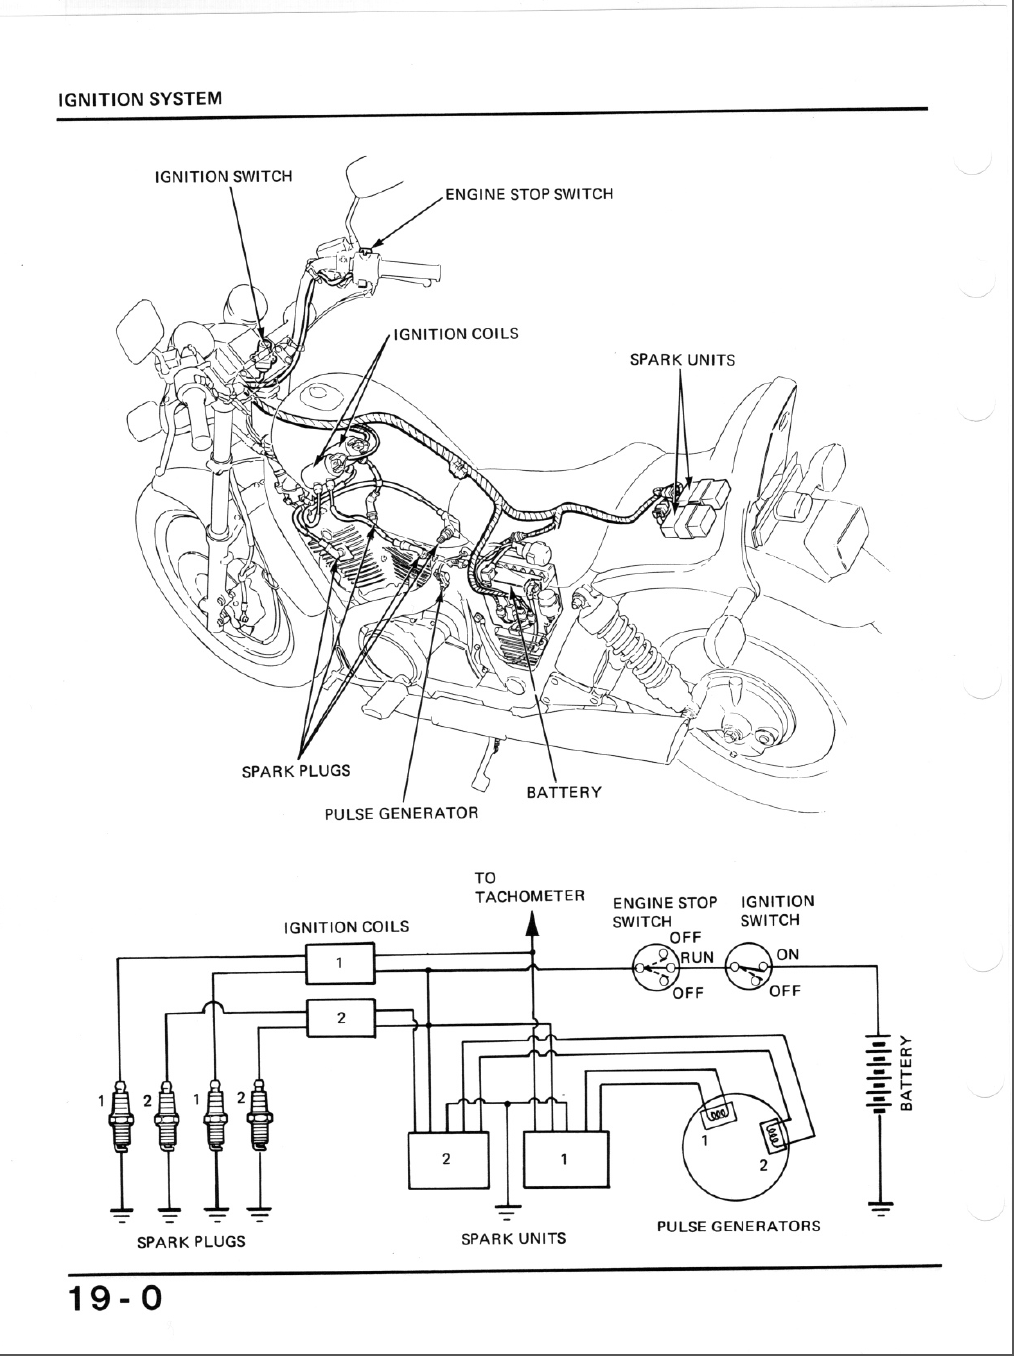 Honda Shadow Vt500 Motorcycle Wiring Diagram 44 4 Plug Diagrams Atv 9267d1409799693 1984 700 Ignition System Chinese At